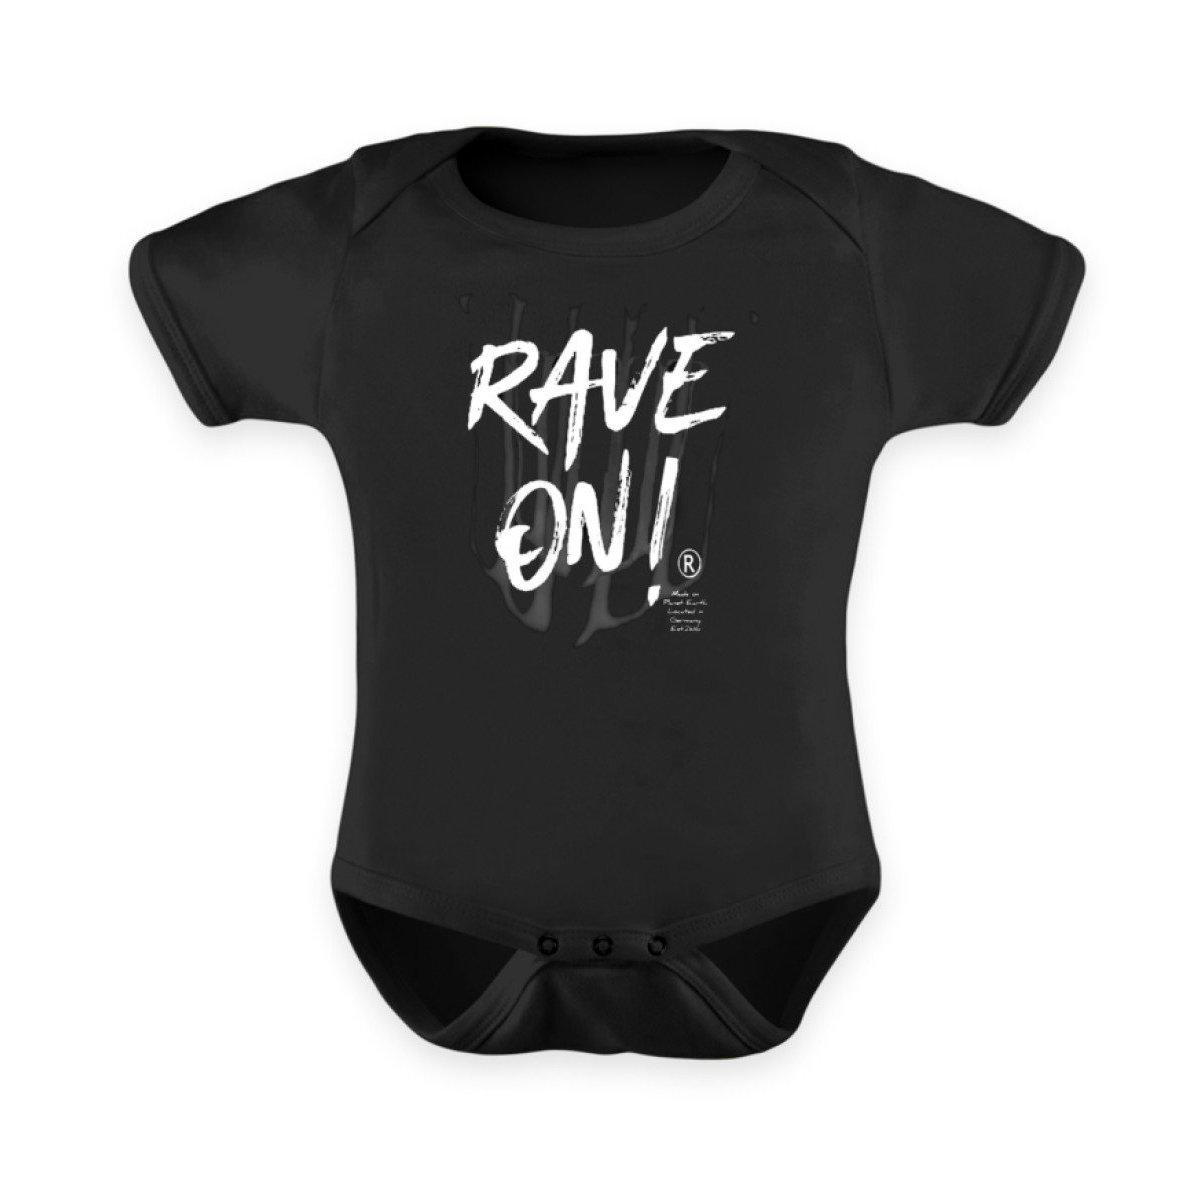 Rave On!® - B2k20 Baby Strampler - Baby Body Baby Strampler 12-18 Monate - Rave On!® der Club & Techno Szene Shop für Coole Junge Mode Streetwear Style & Fashion Outfits + Sexy Festival 420 Stuff